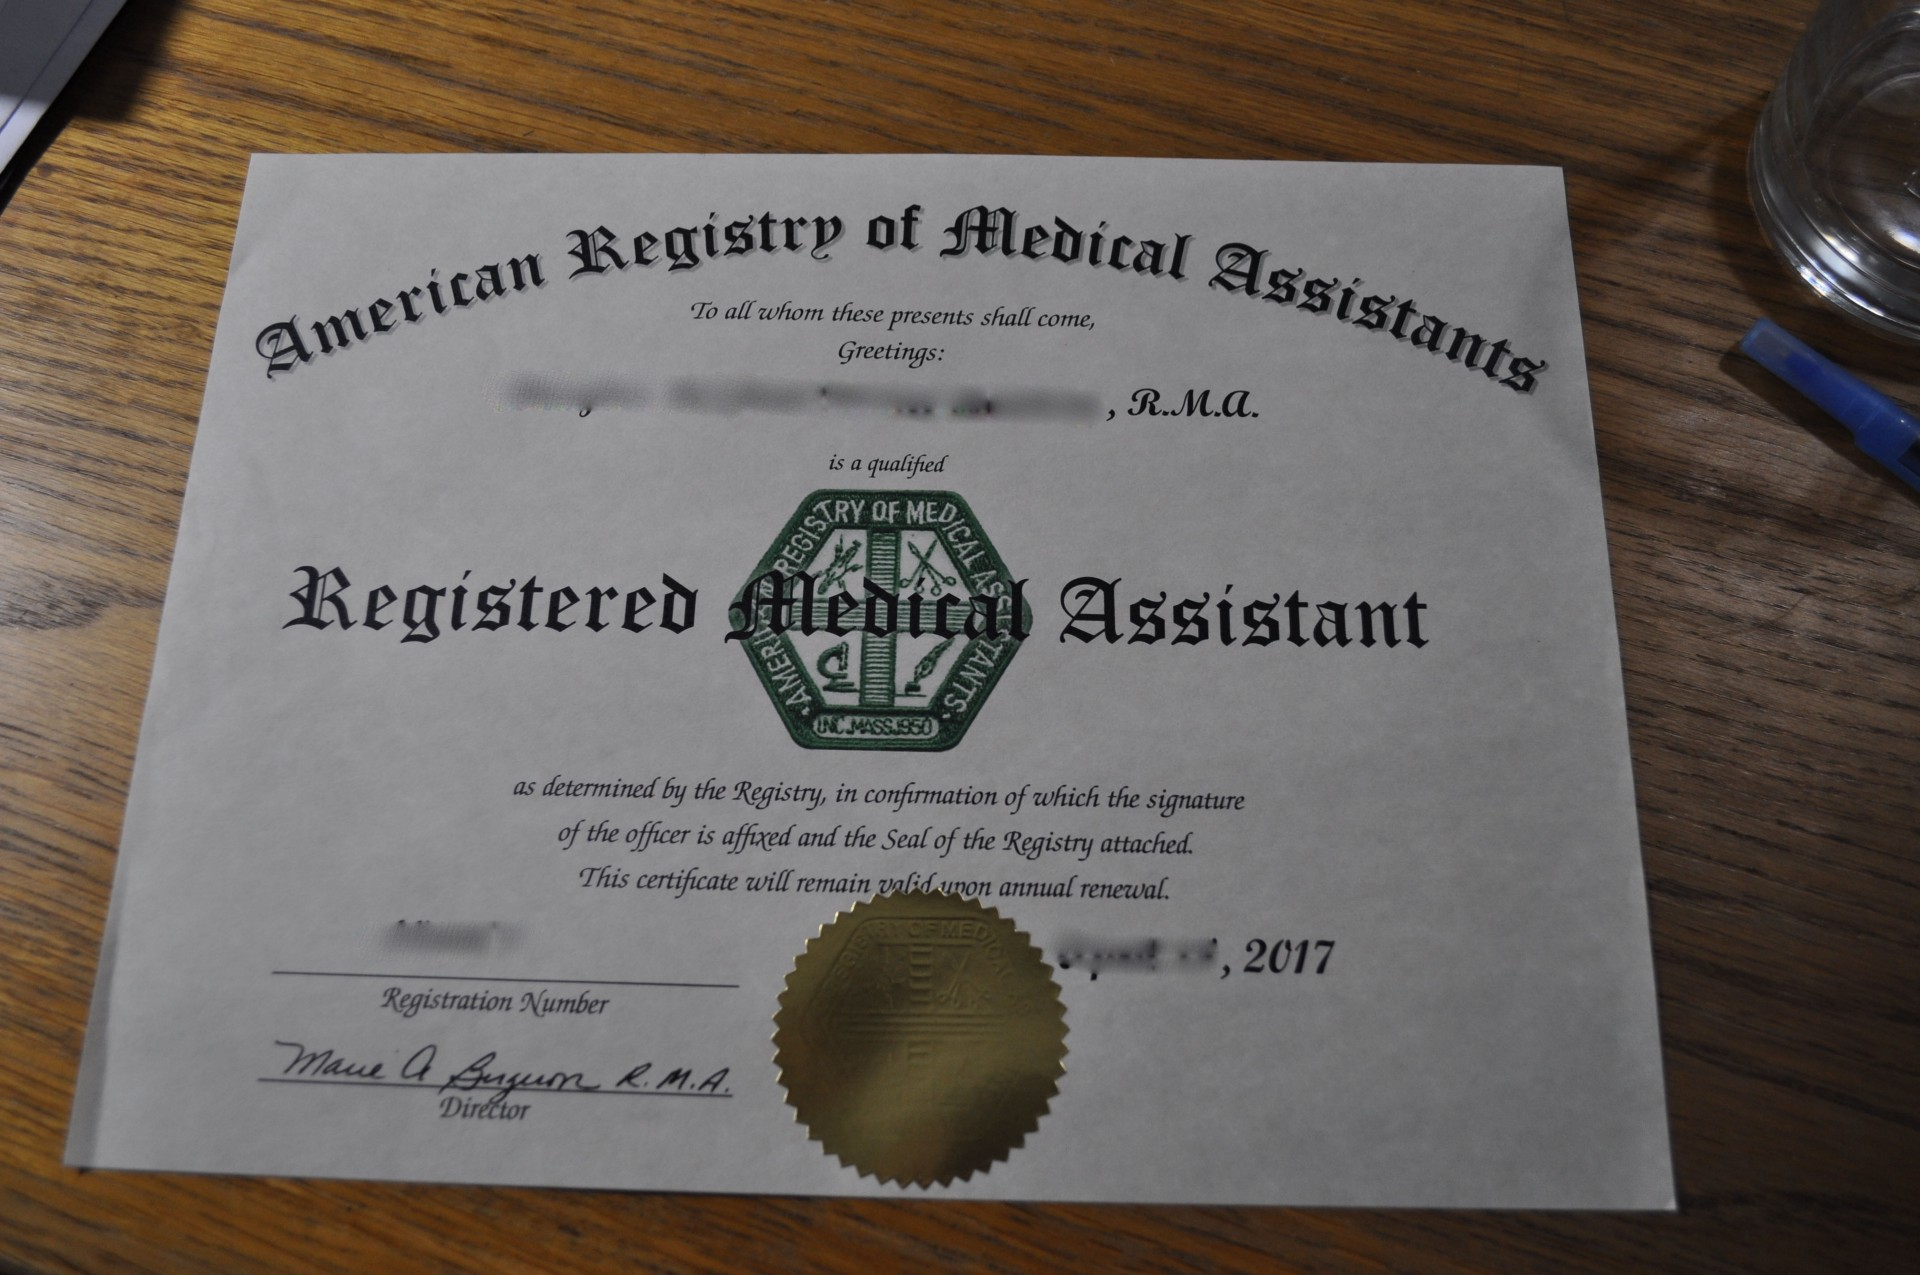 Cómo obtener el certificado de Registered Medical Assistant a través ...